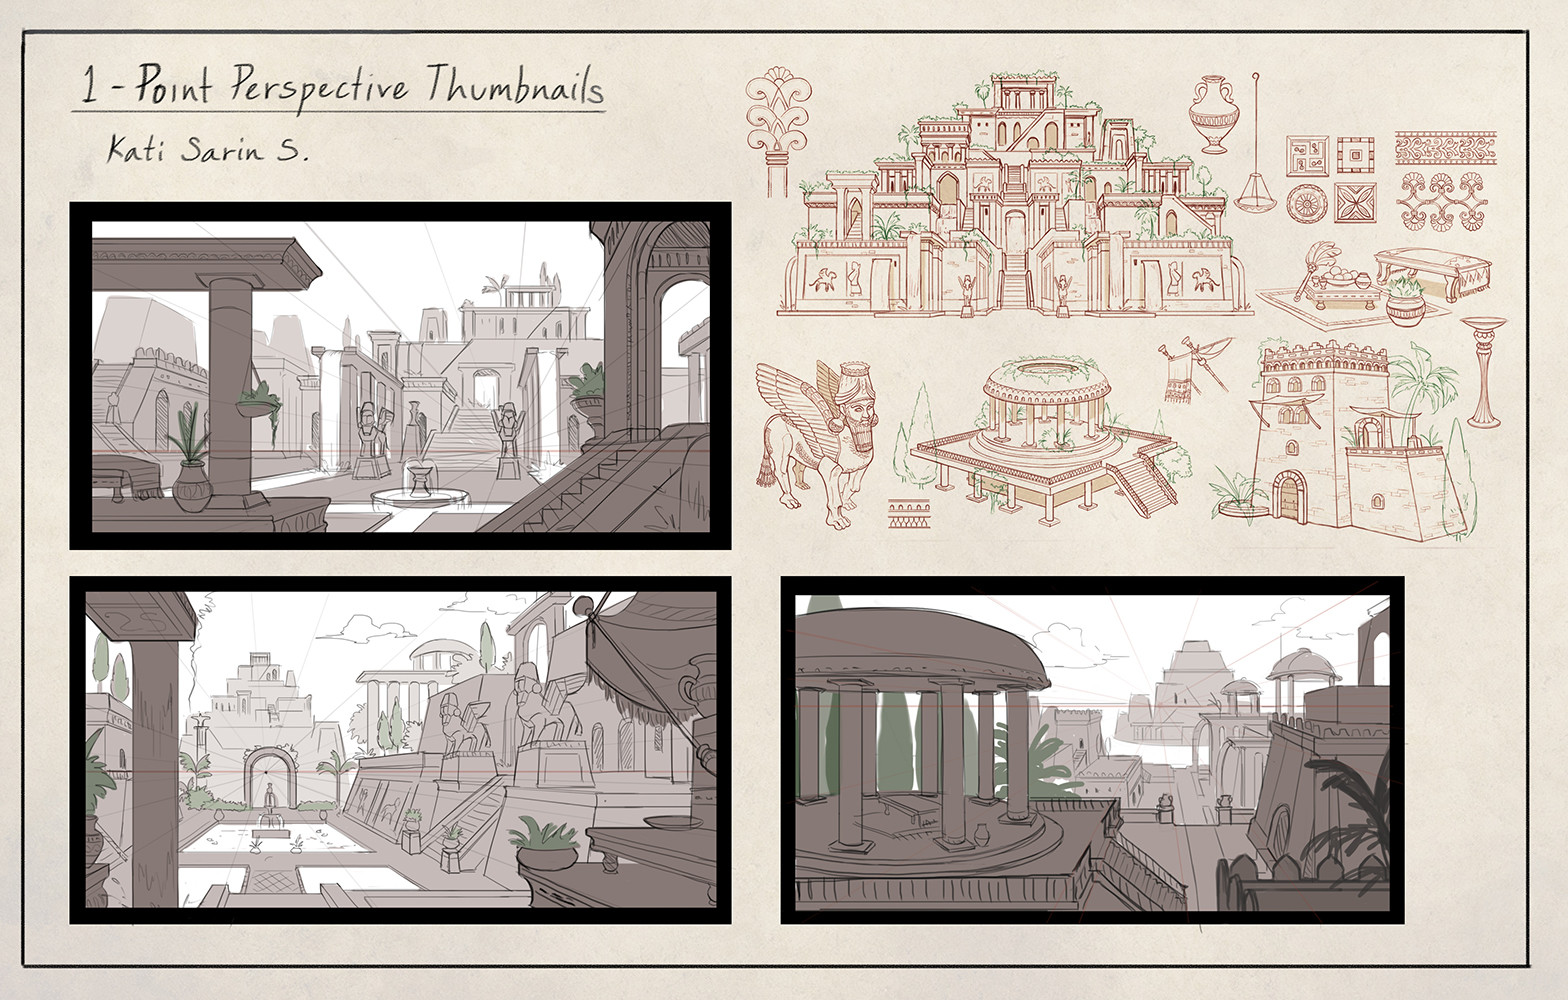 Thumbnail sketches of ideas before proceed to line art.